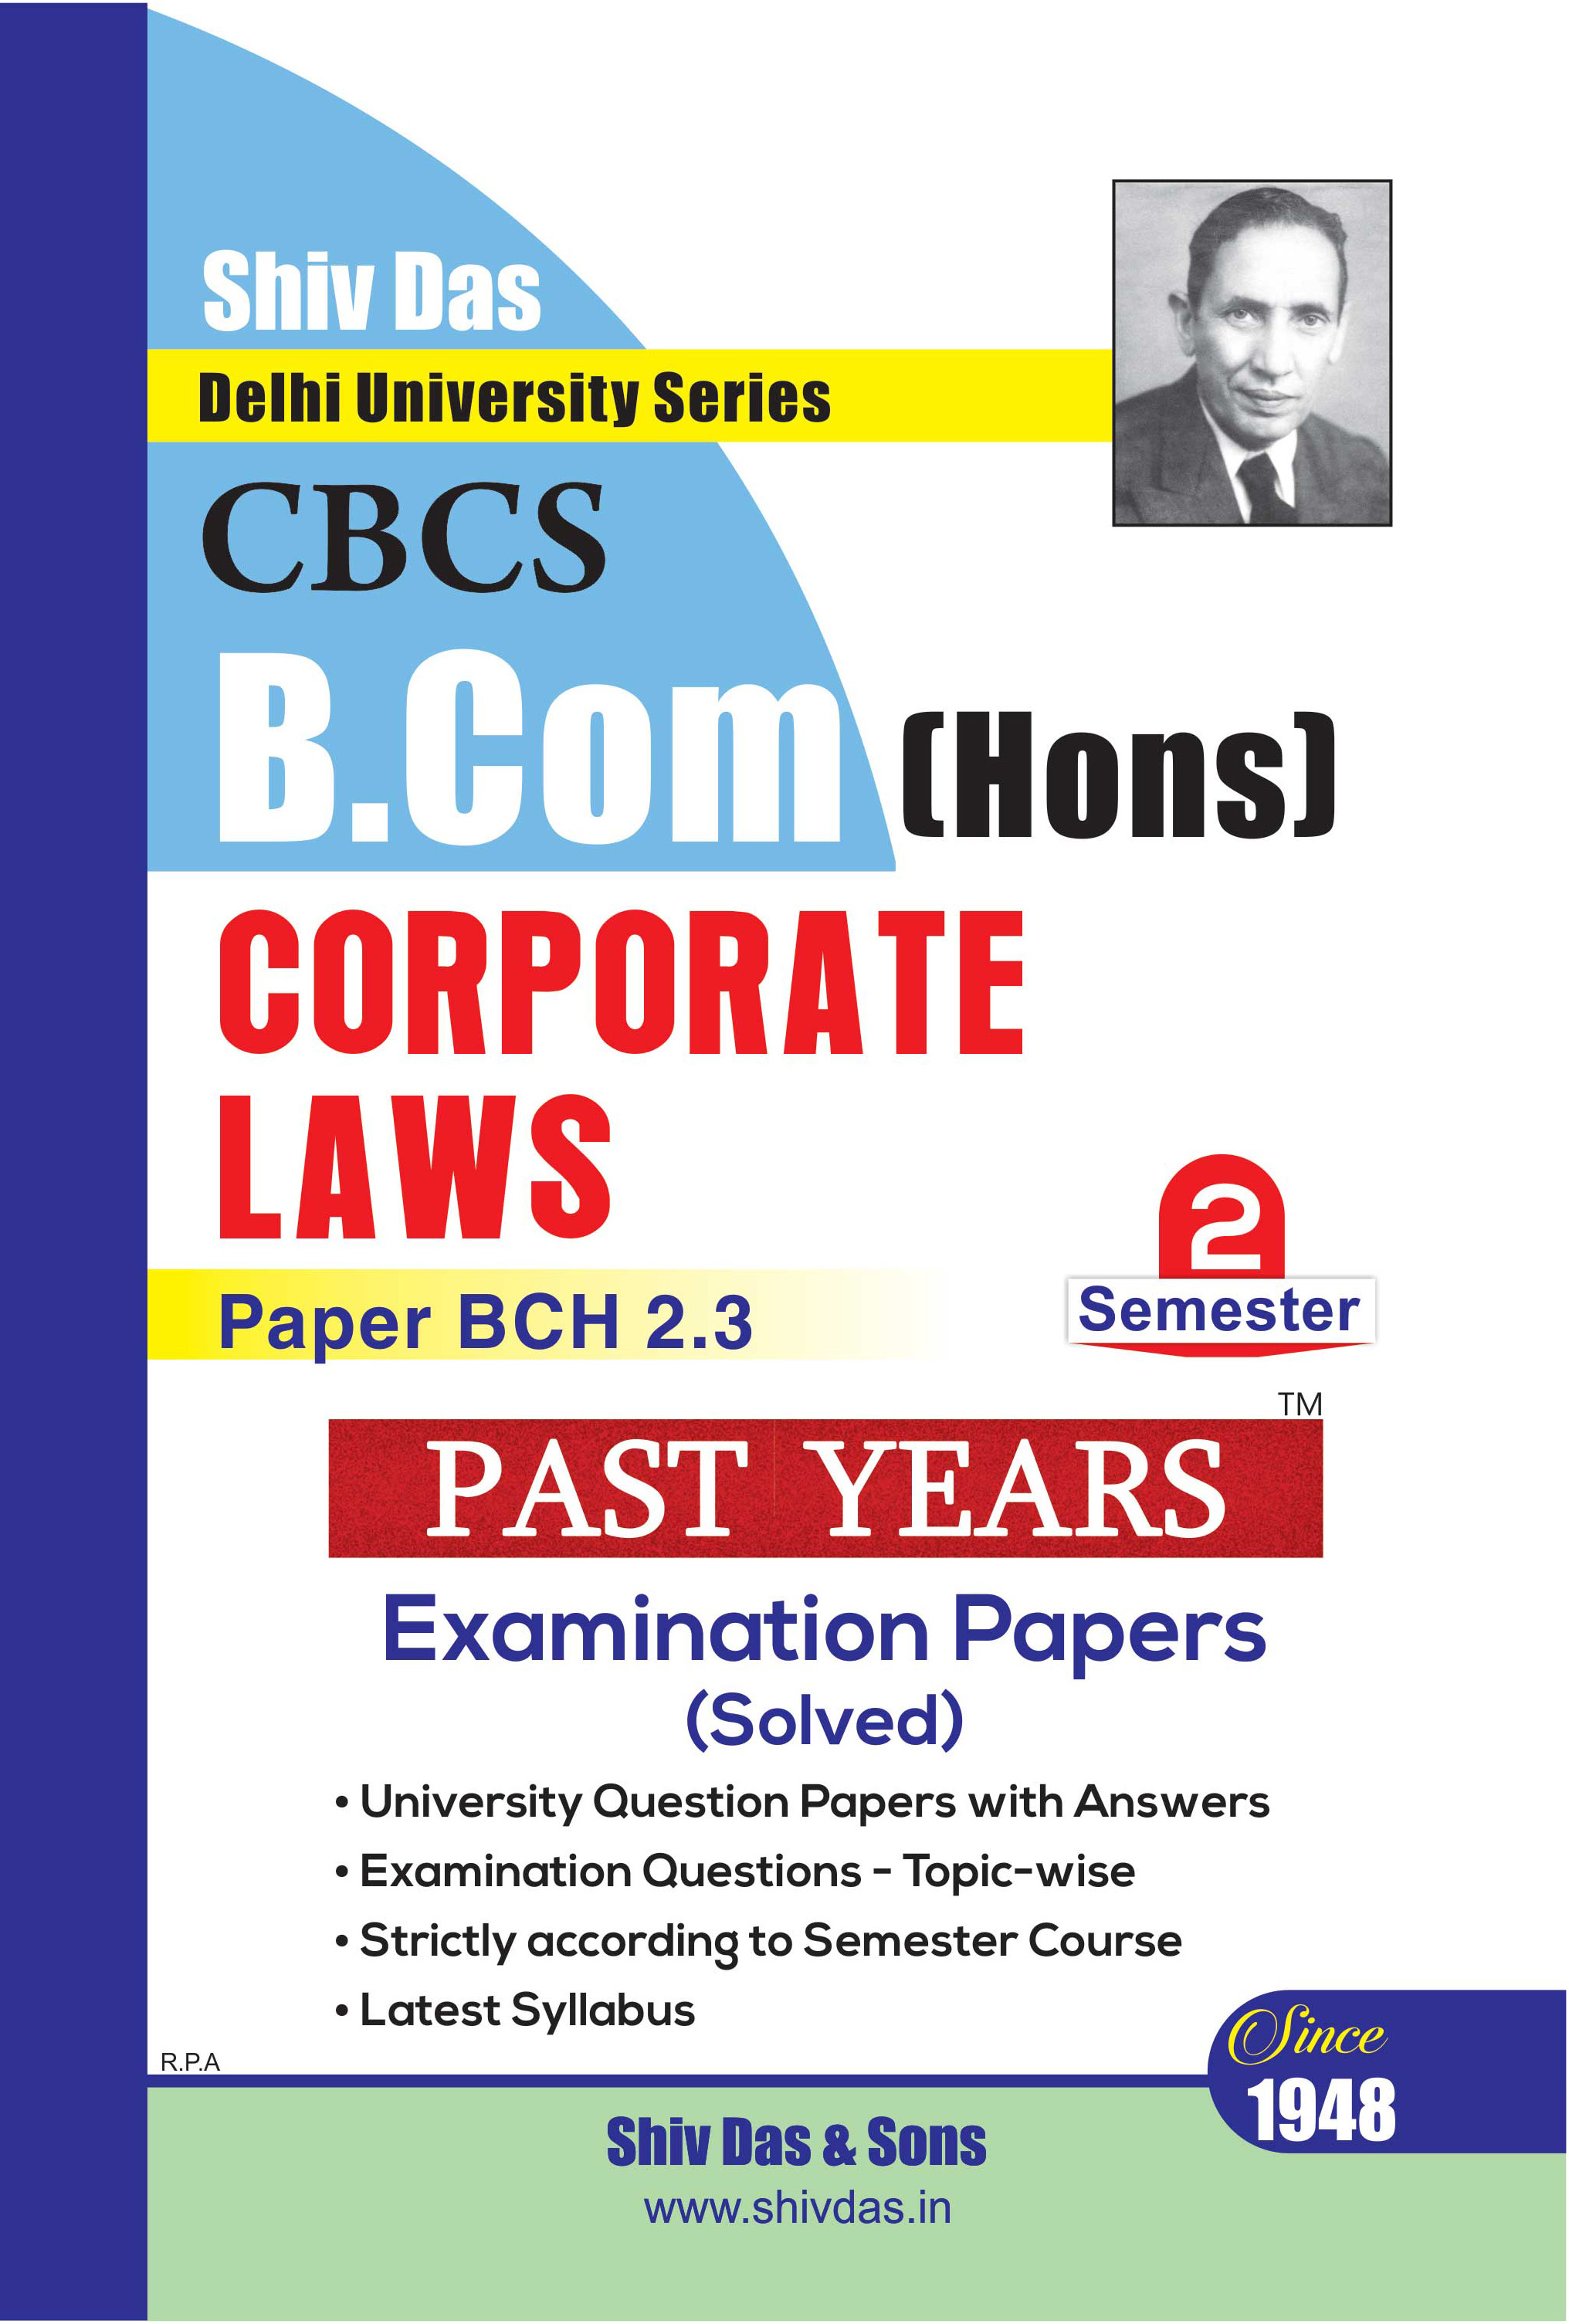 Corporate Laws for B.Com Hons Semester 2